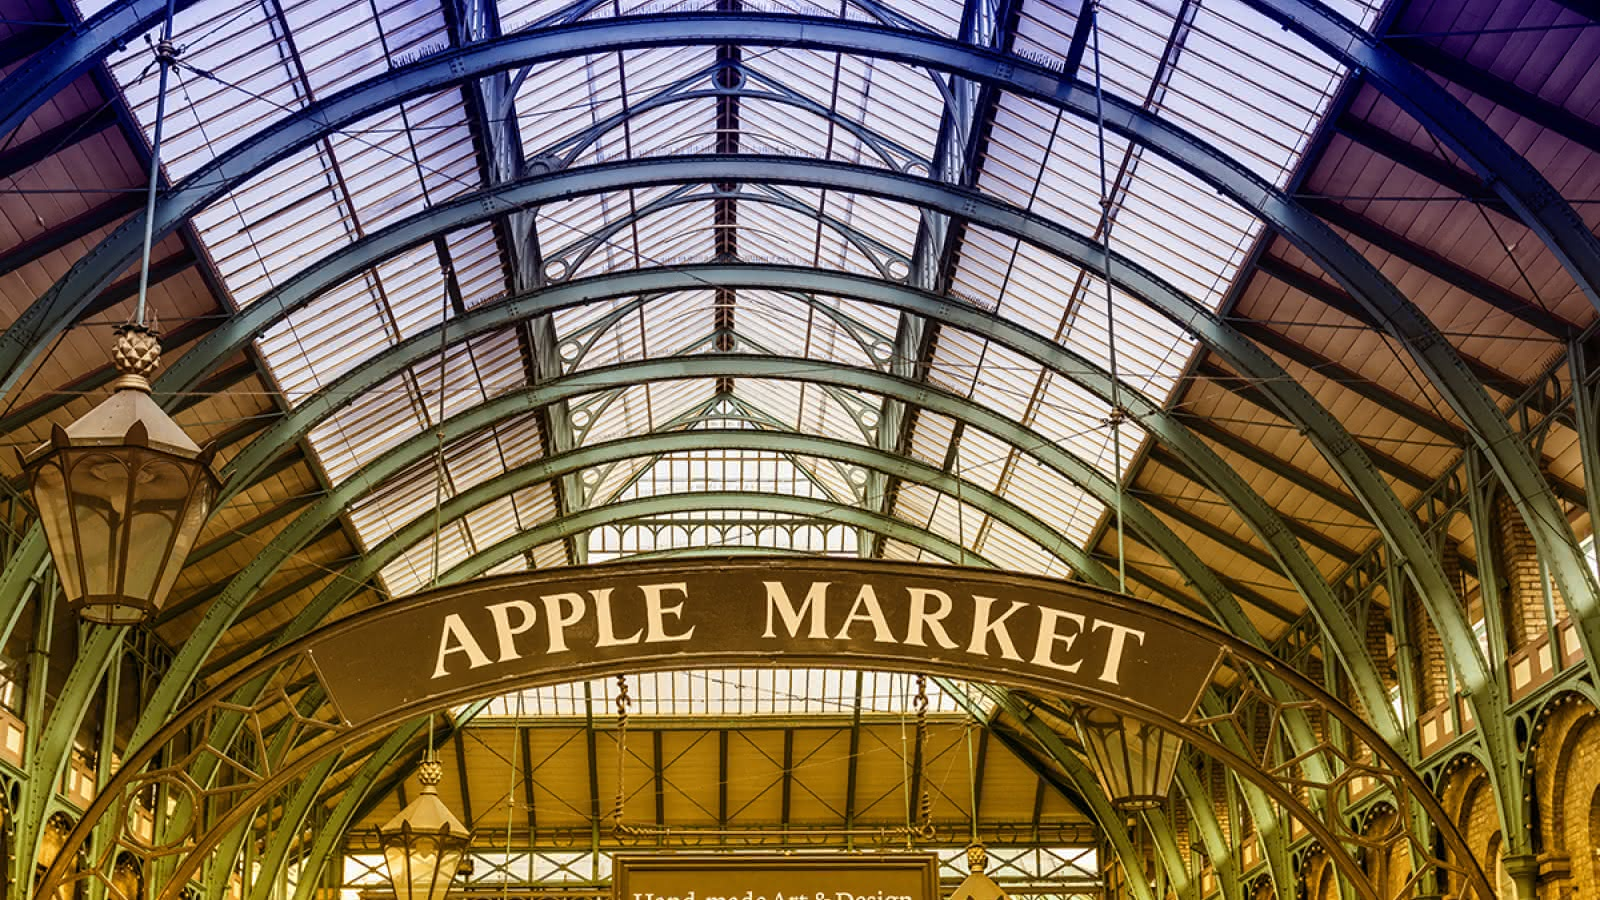 London Apple Market